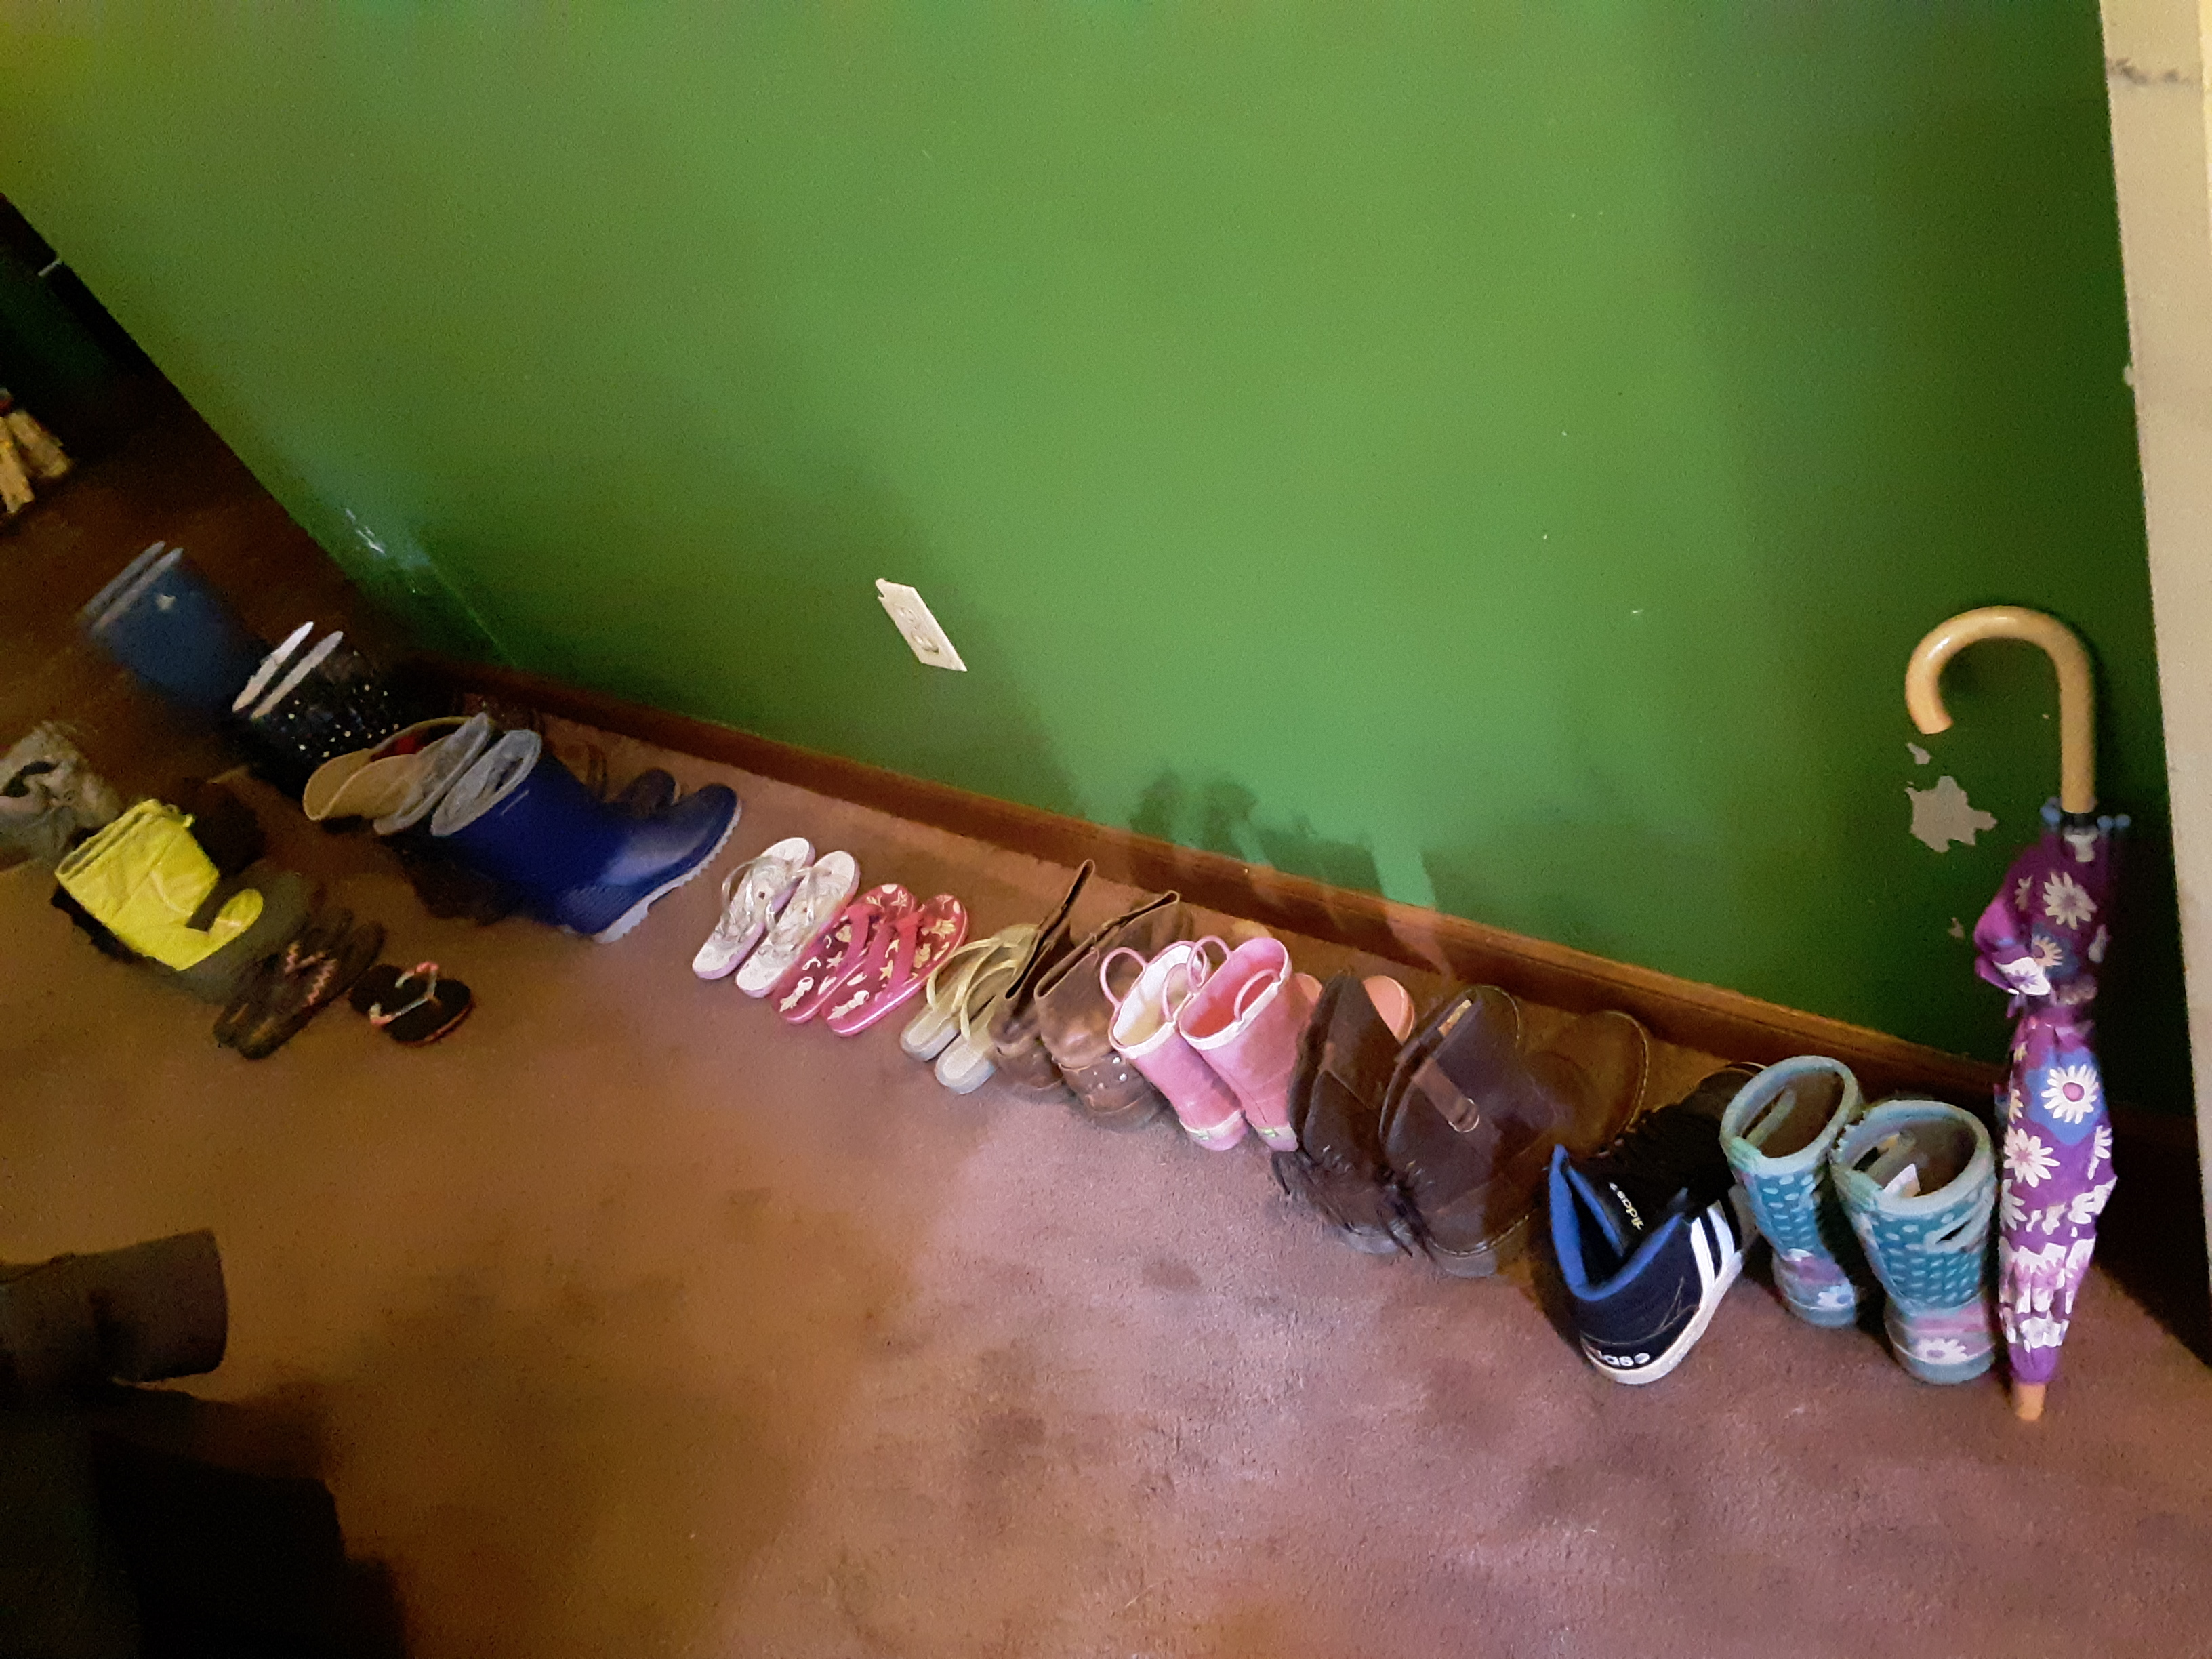 Quite the collection of boots and flip flops!